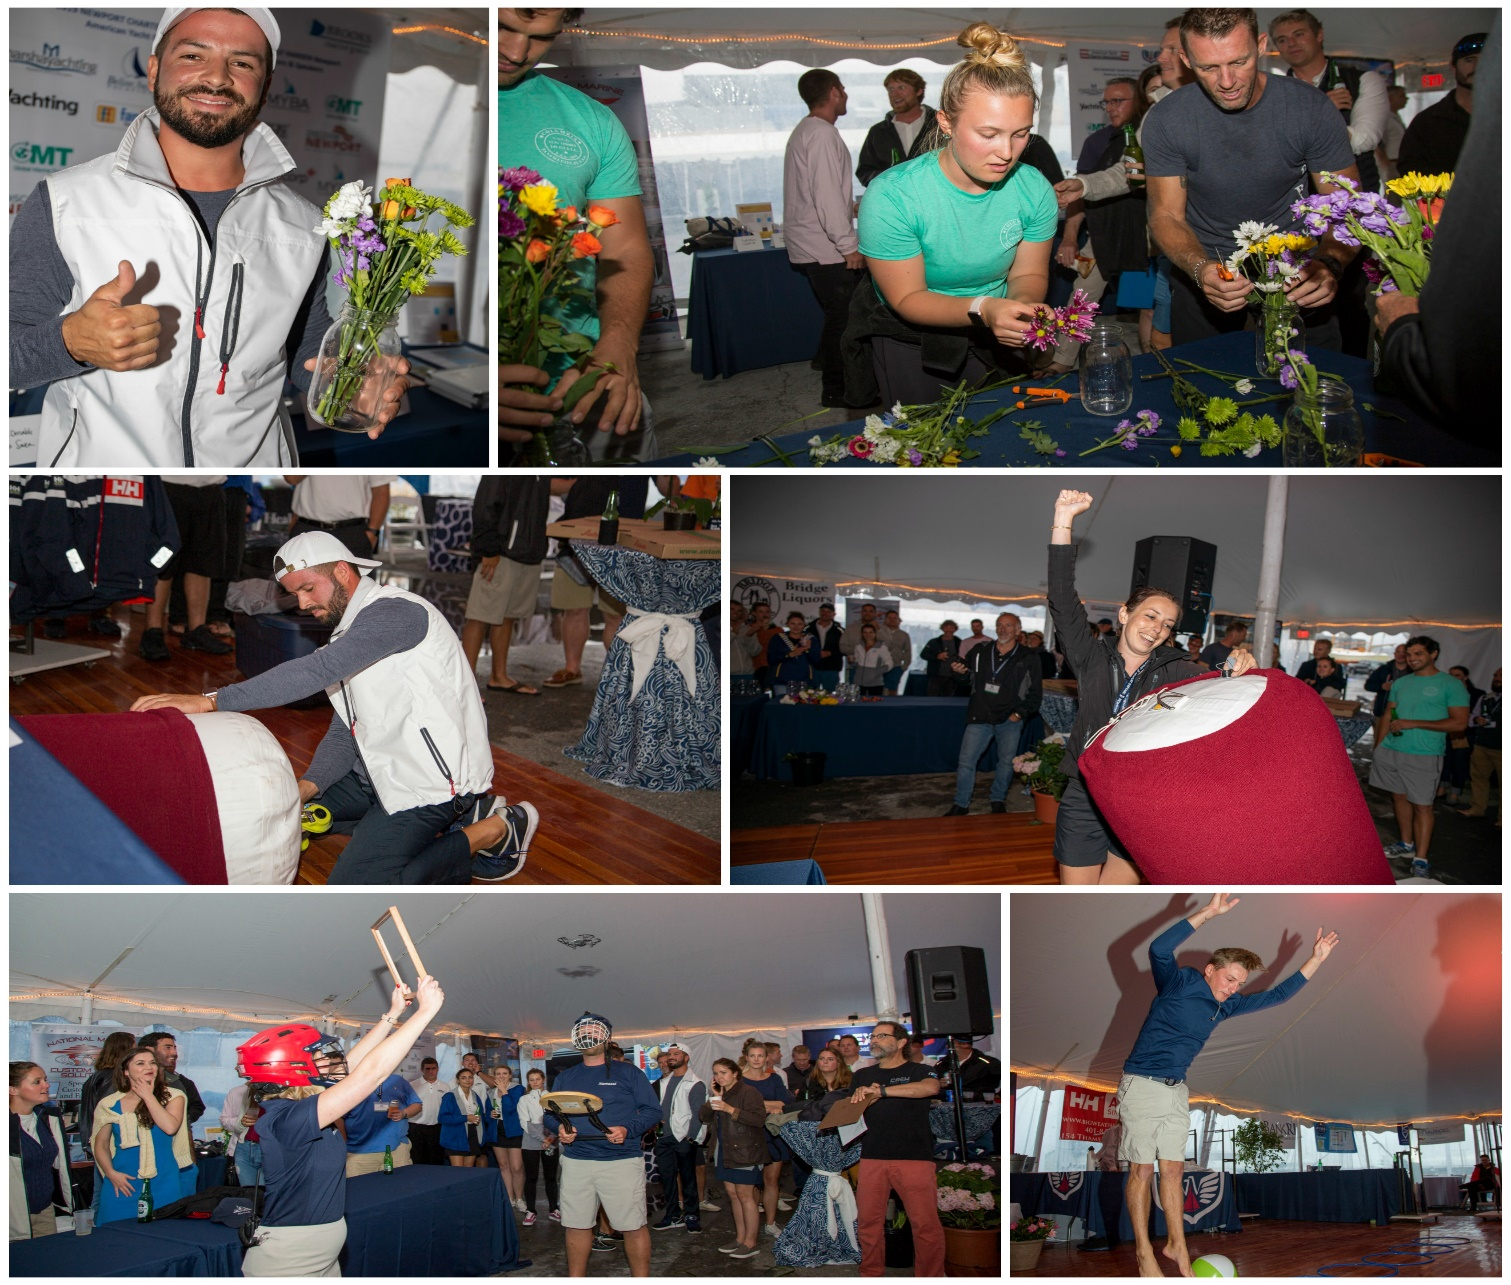 Scenes from the Captain & Deck Challenge at the 2019 Newport Charter Yacht Show presented by Helly Hansen Newport. (Photos by Billy Black)